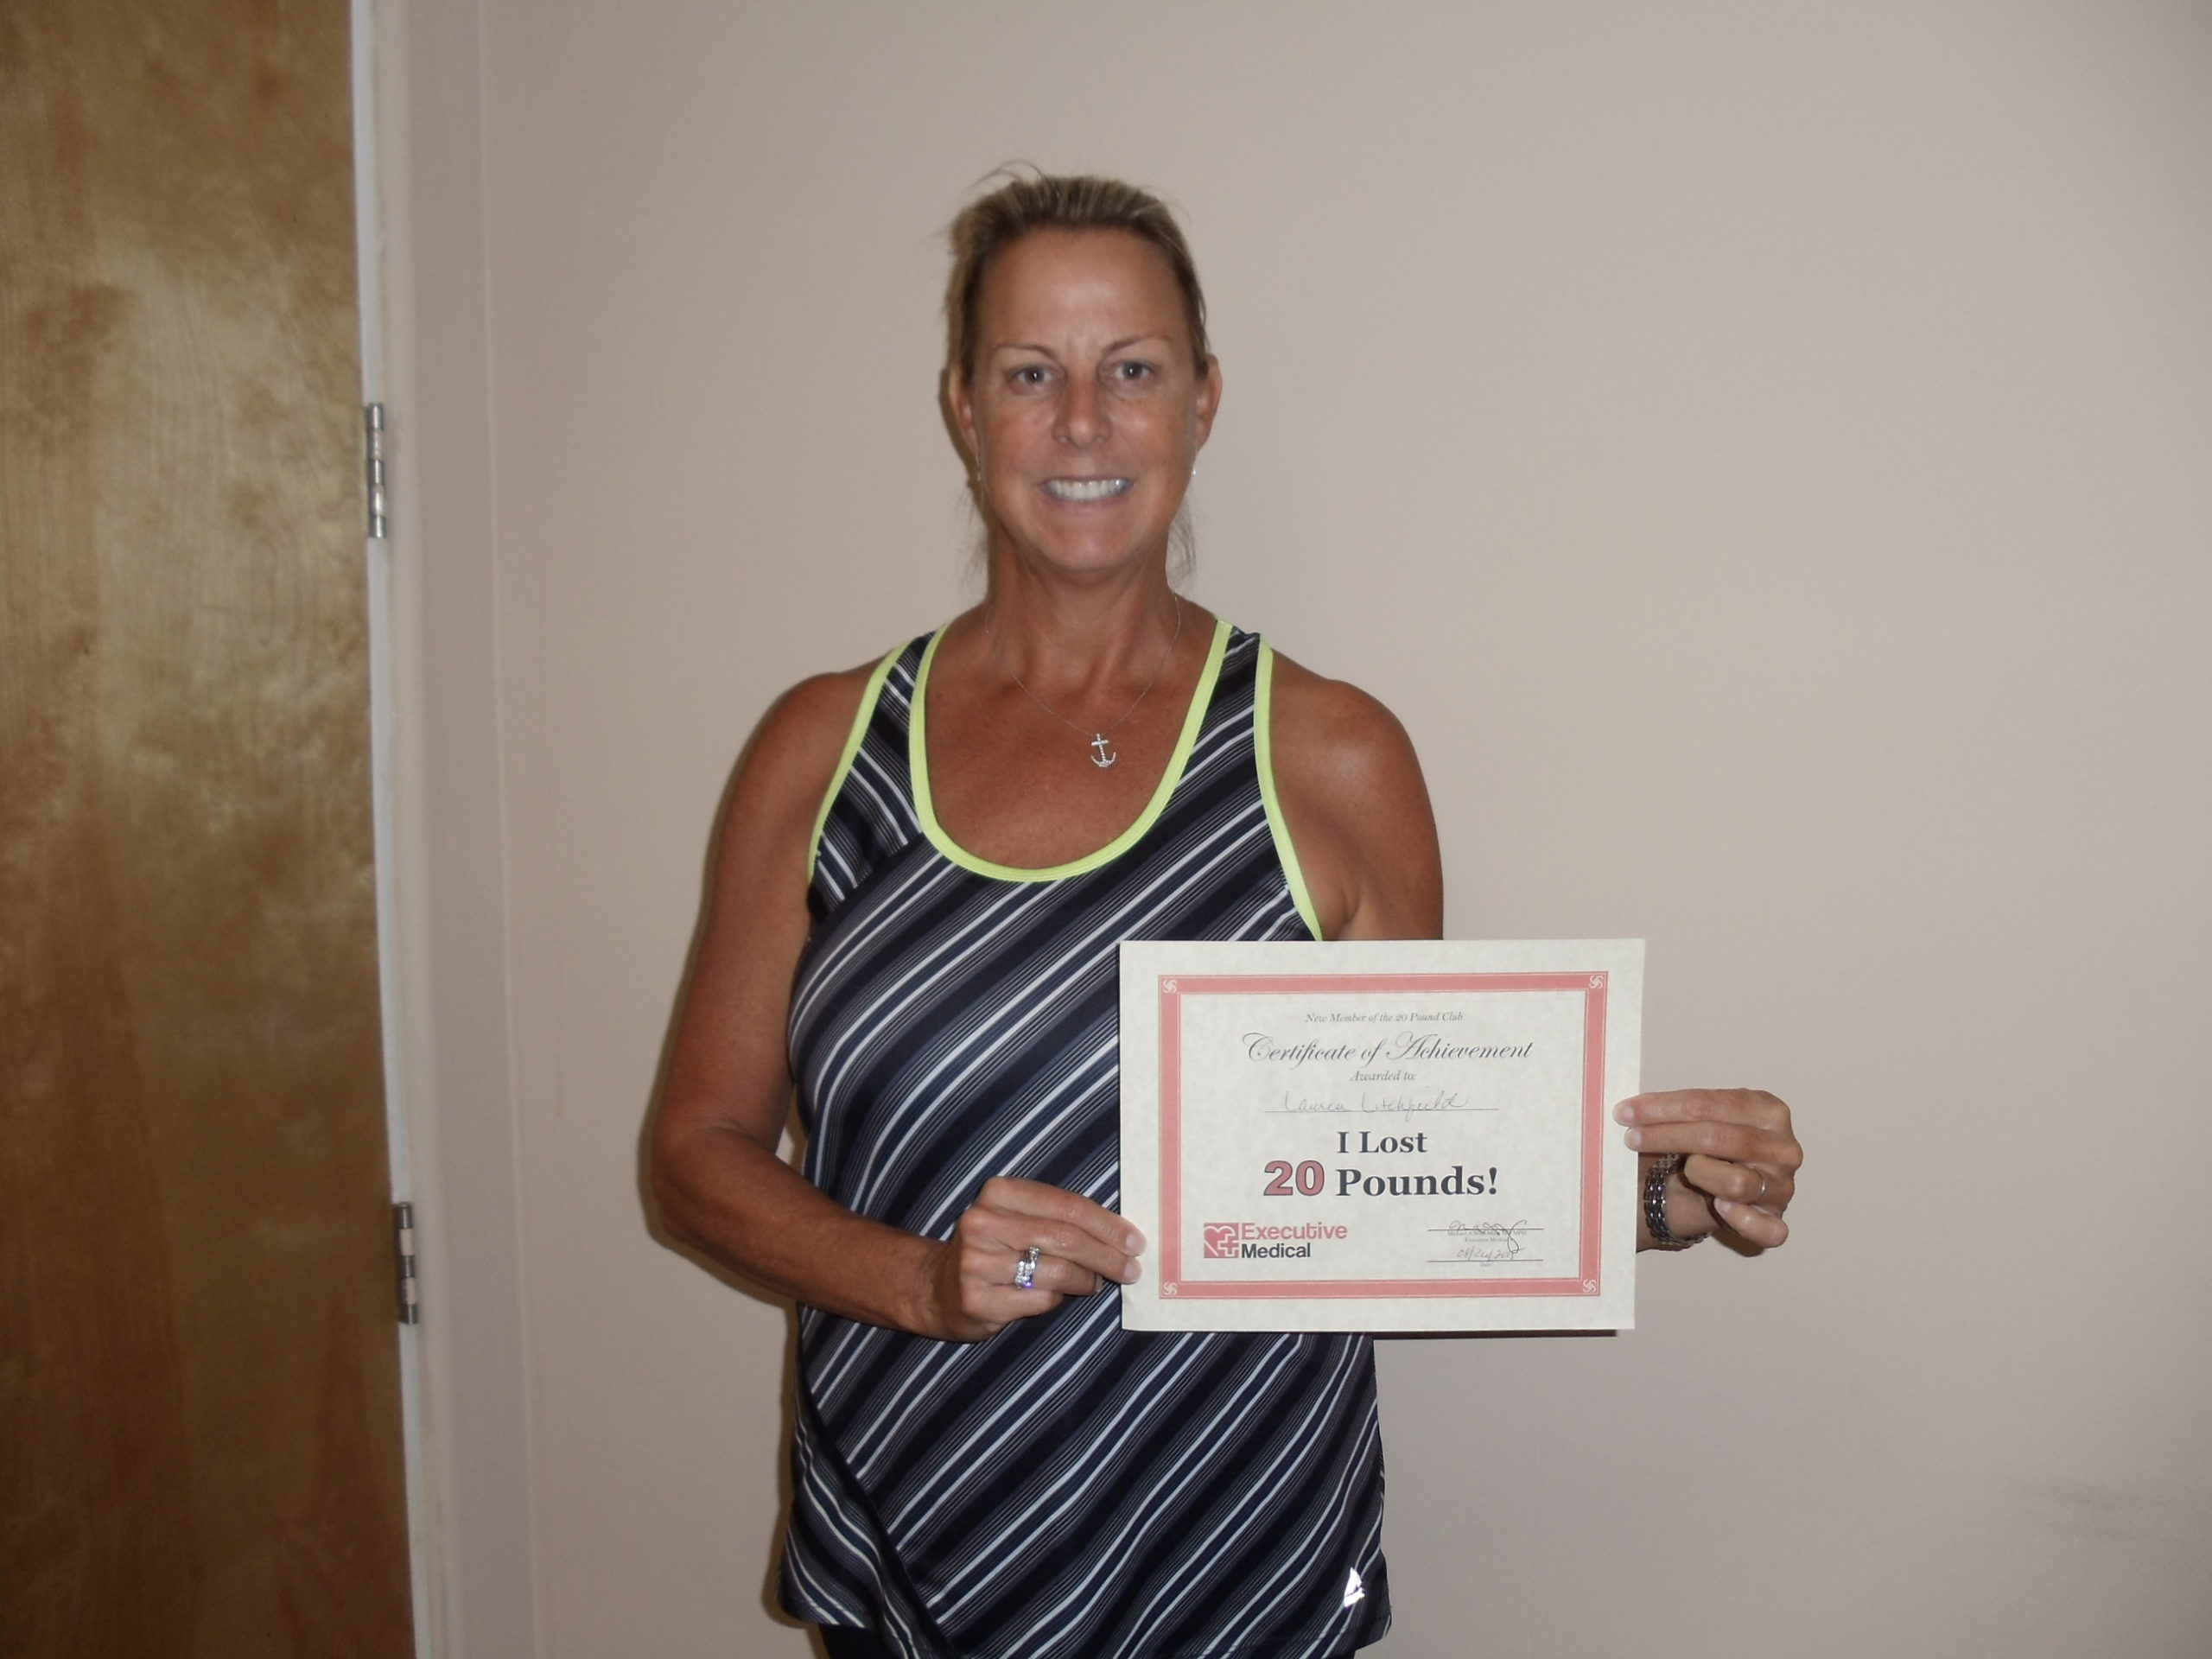 Patient lost 30 pounds in weight loss program!